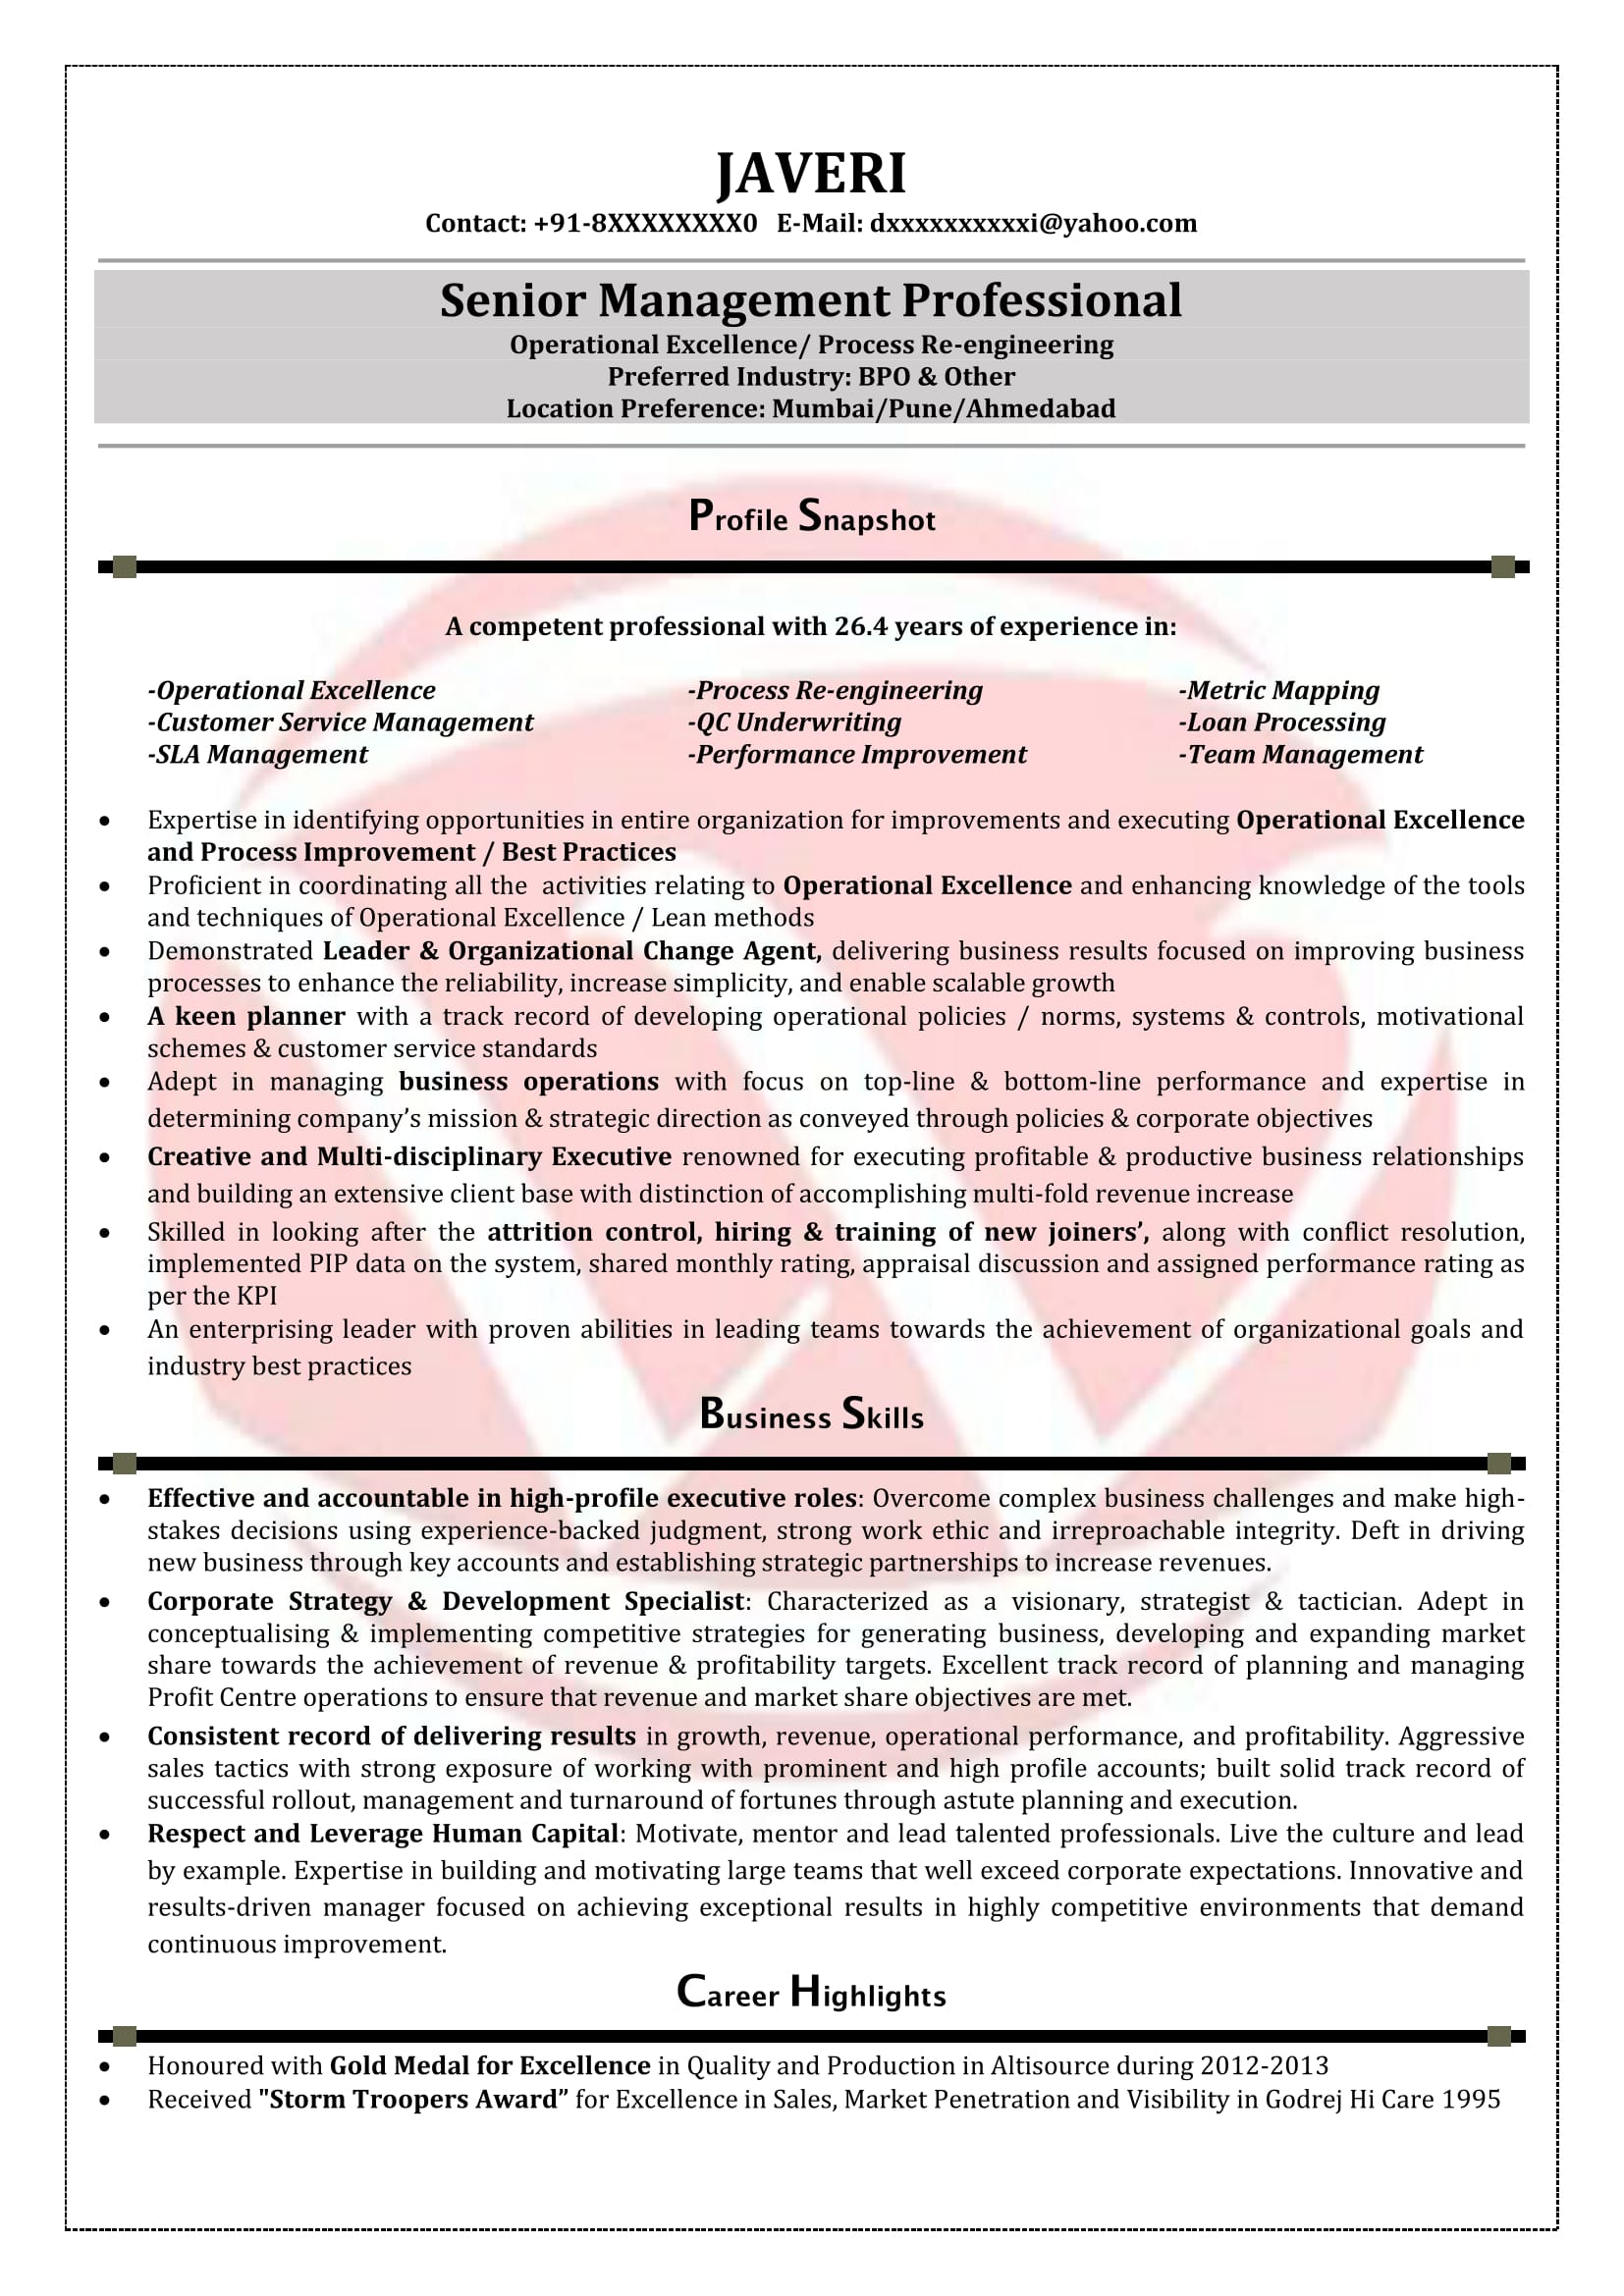 sample resume for experienced ites